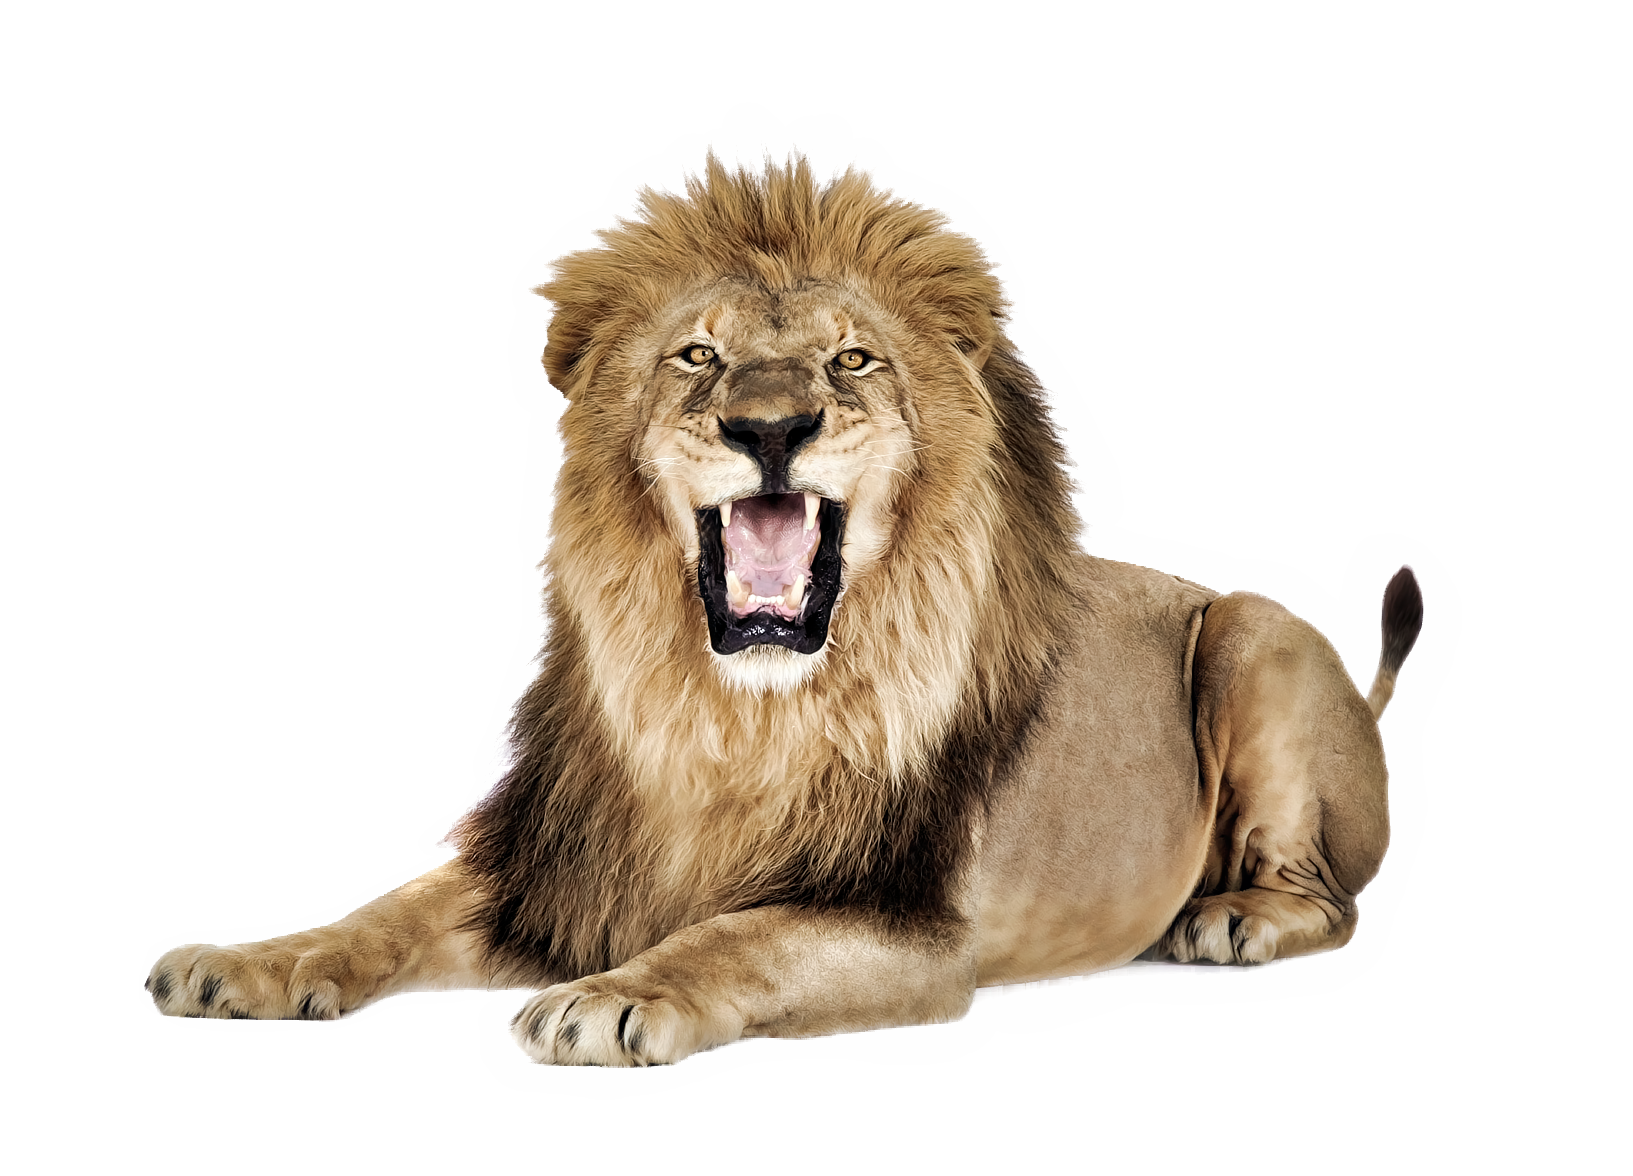 Lion png image. Images transparent free download